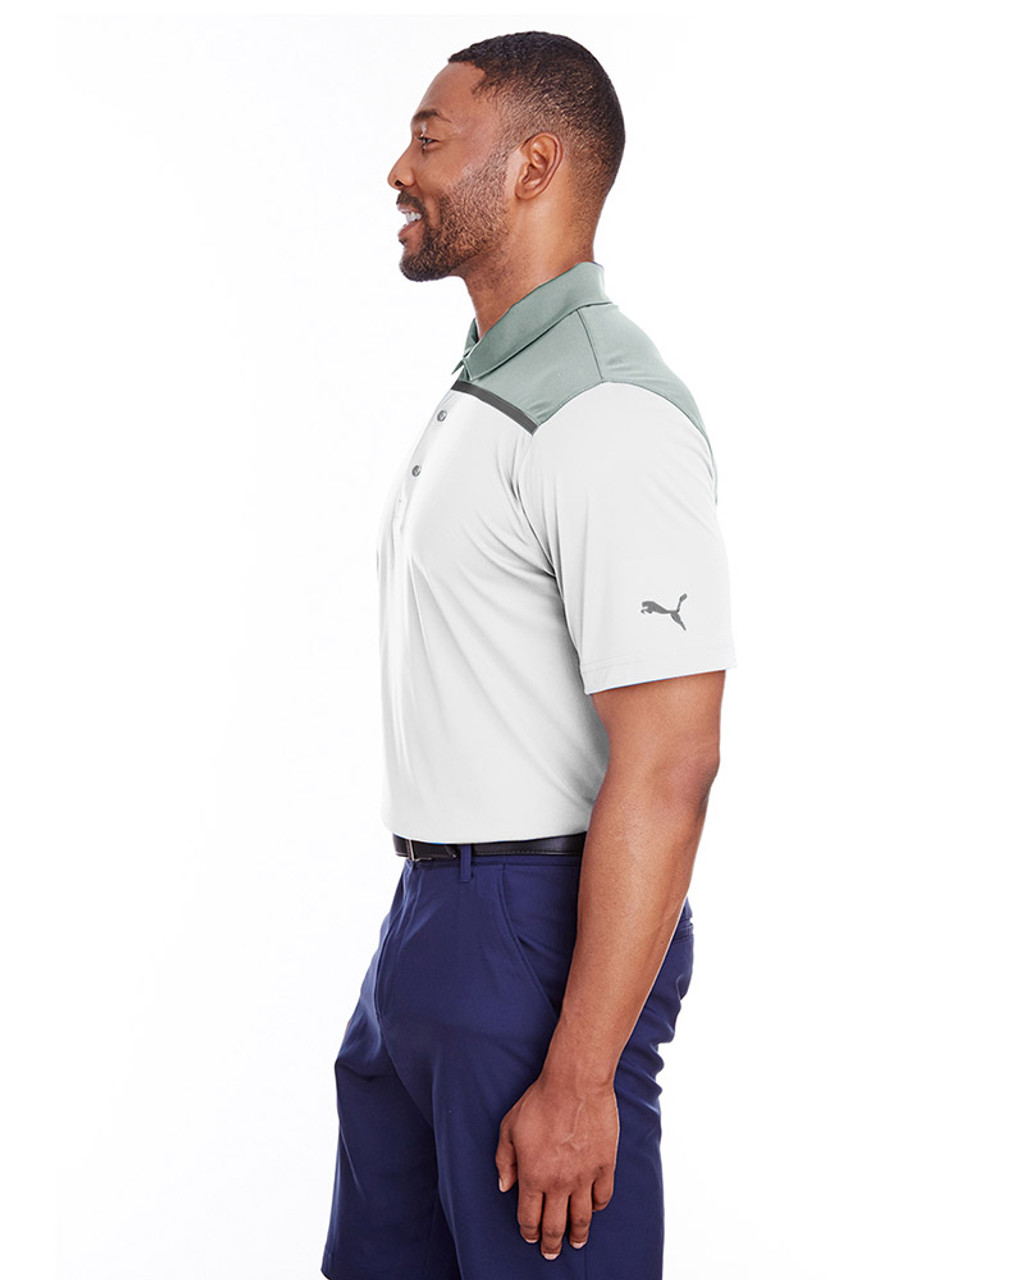 Bright White/Qurry - side, 596805 Puma Golf Men's Bonded Colorblock Polo | Blankclothing.ca